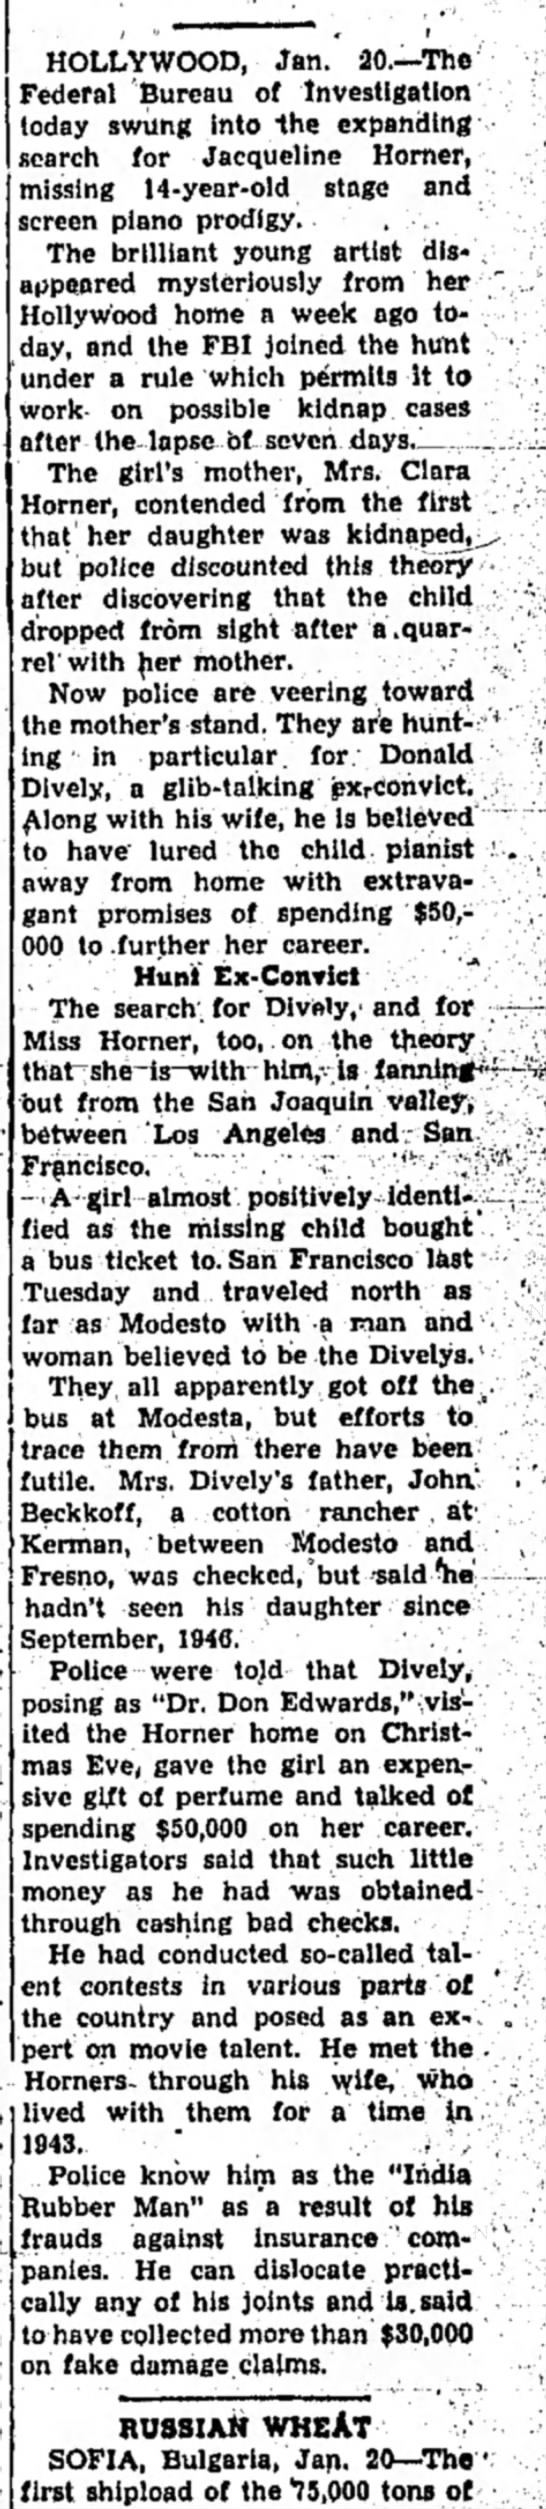 Donald R Dively CA in trouble again 1948